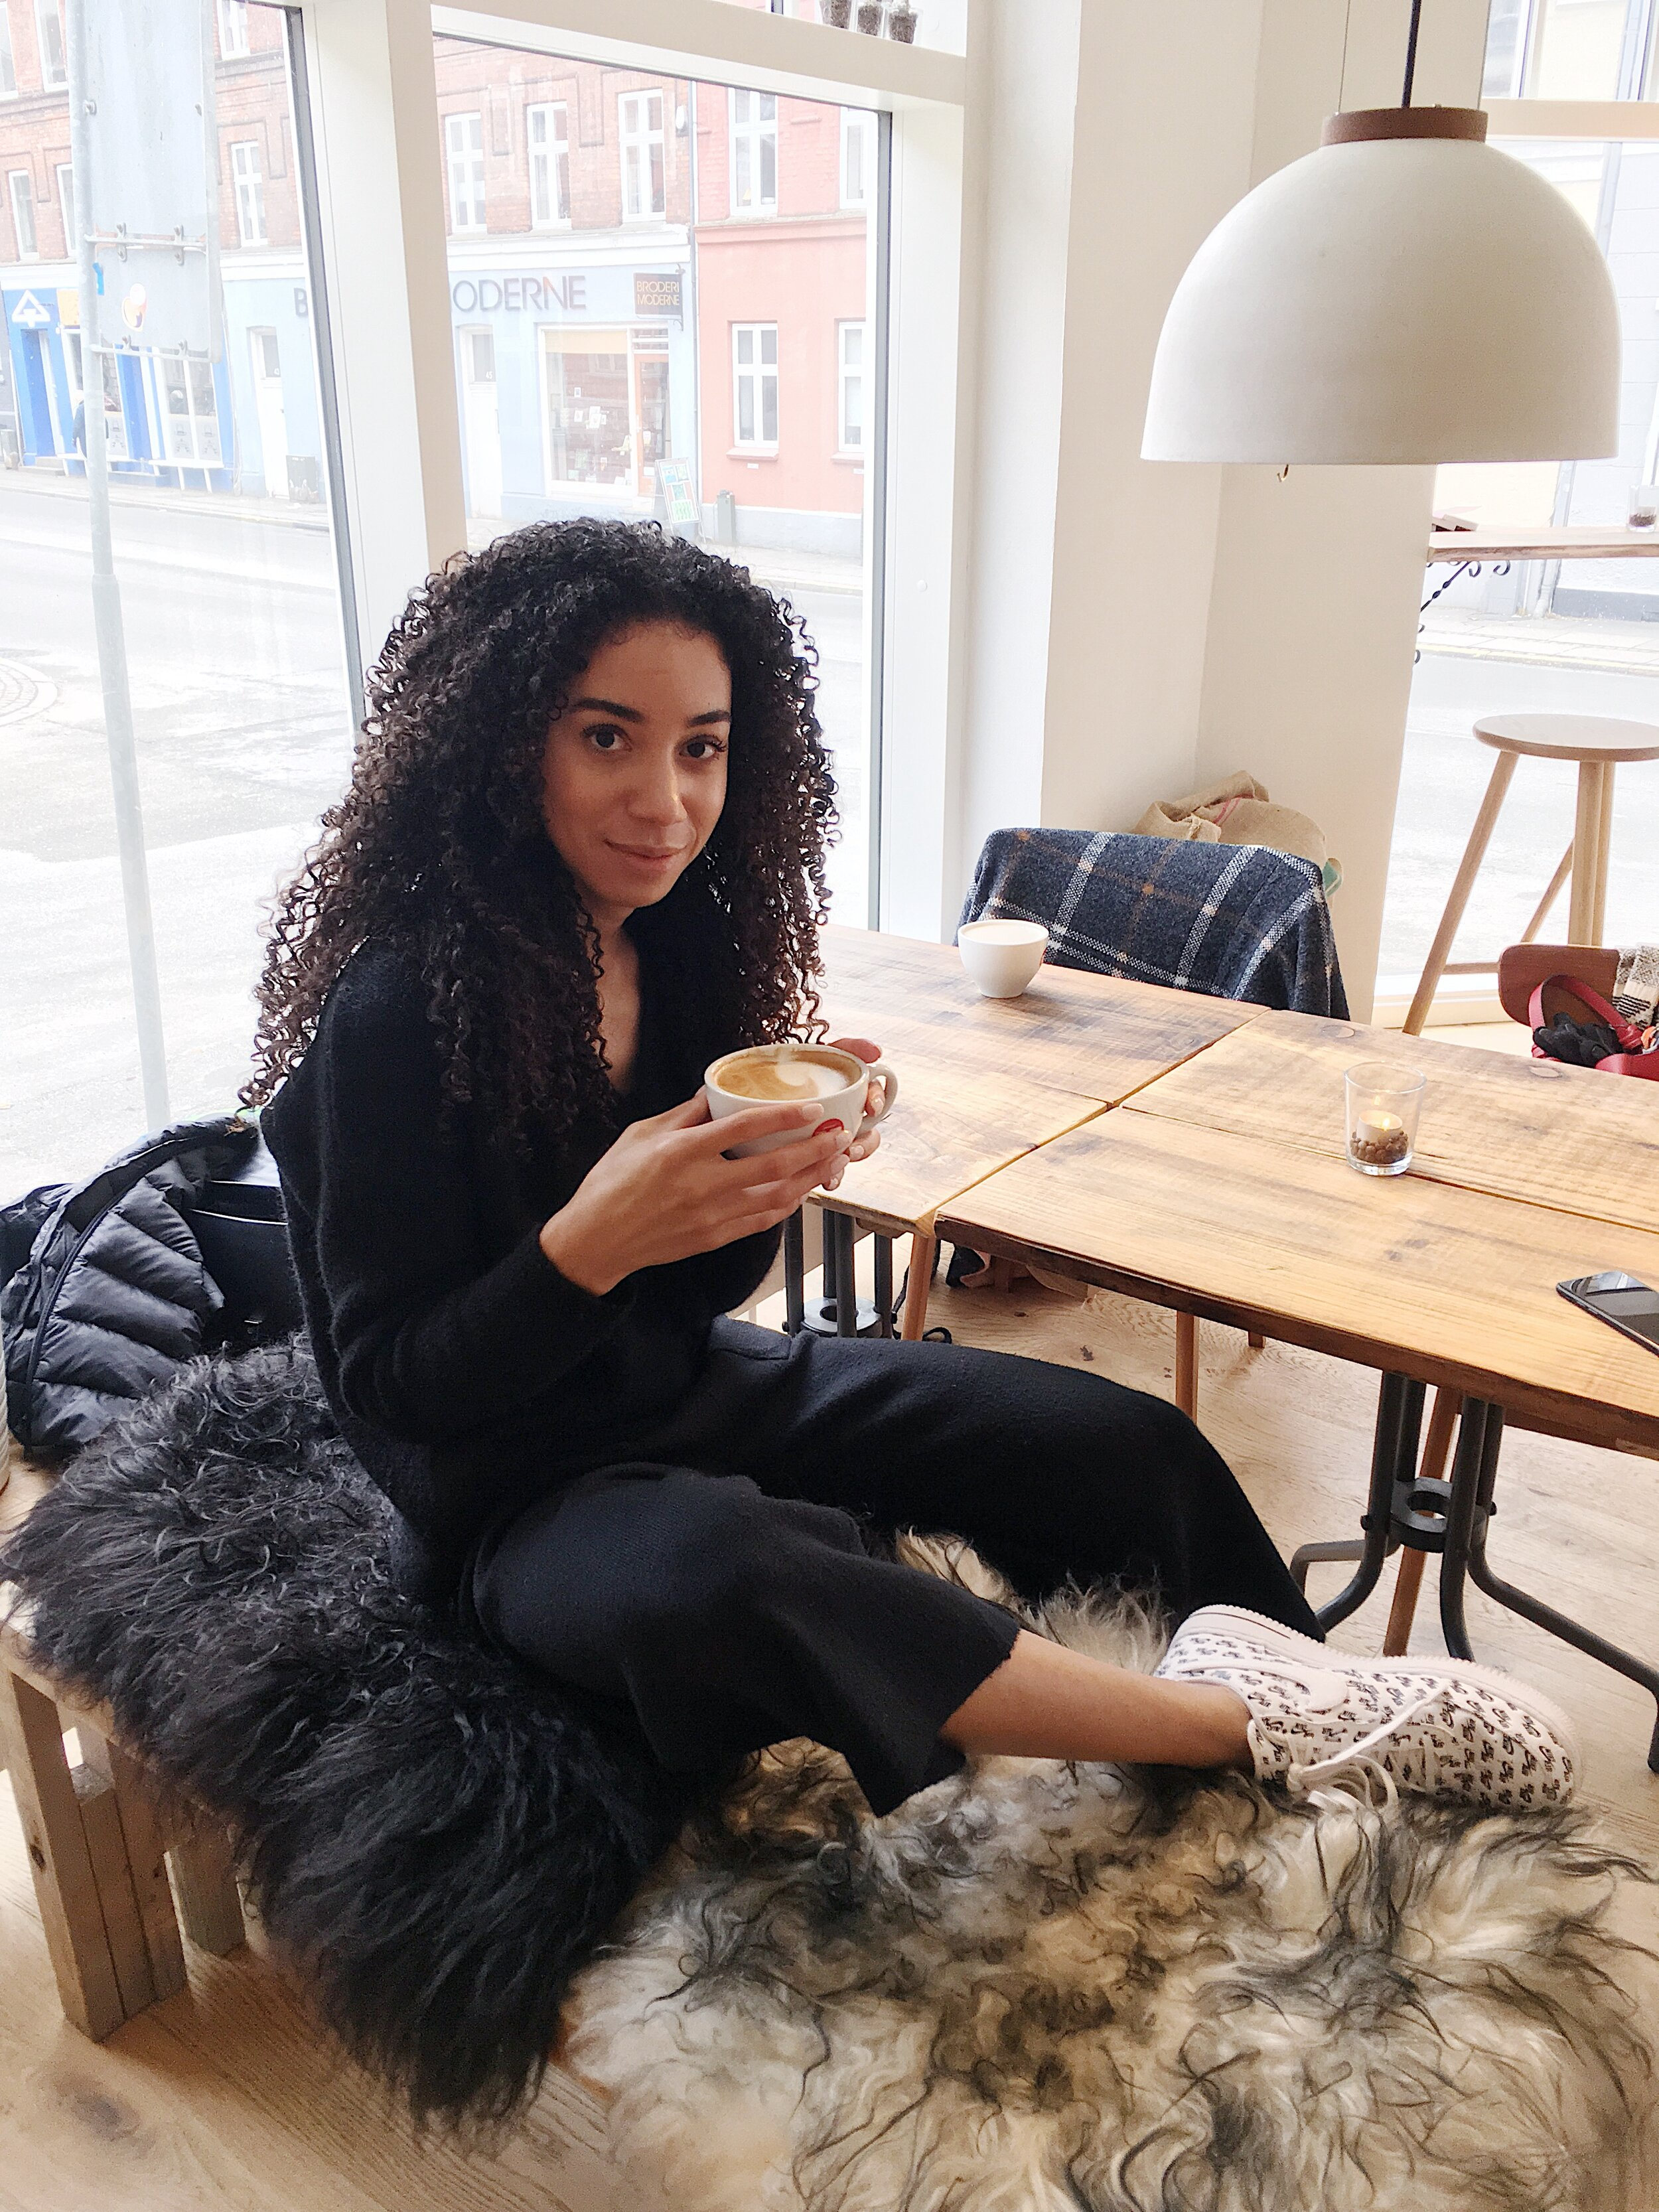 Cosy Arhus winters and cafes